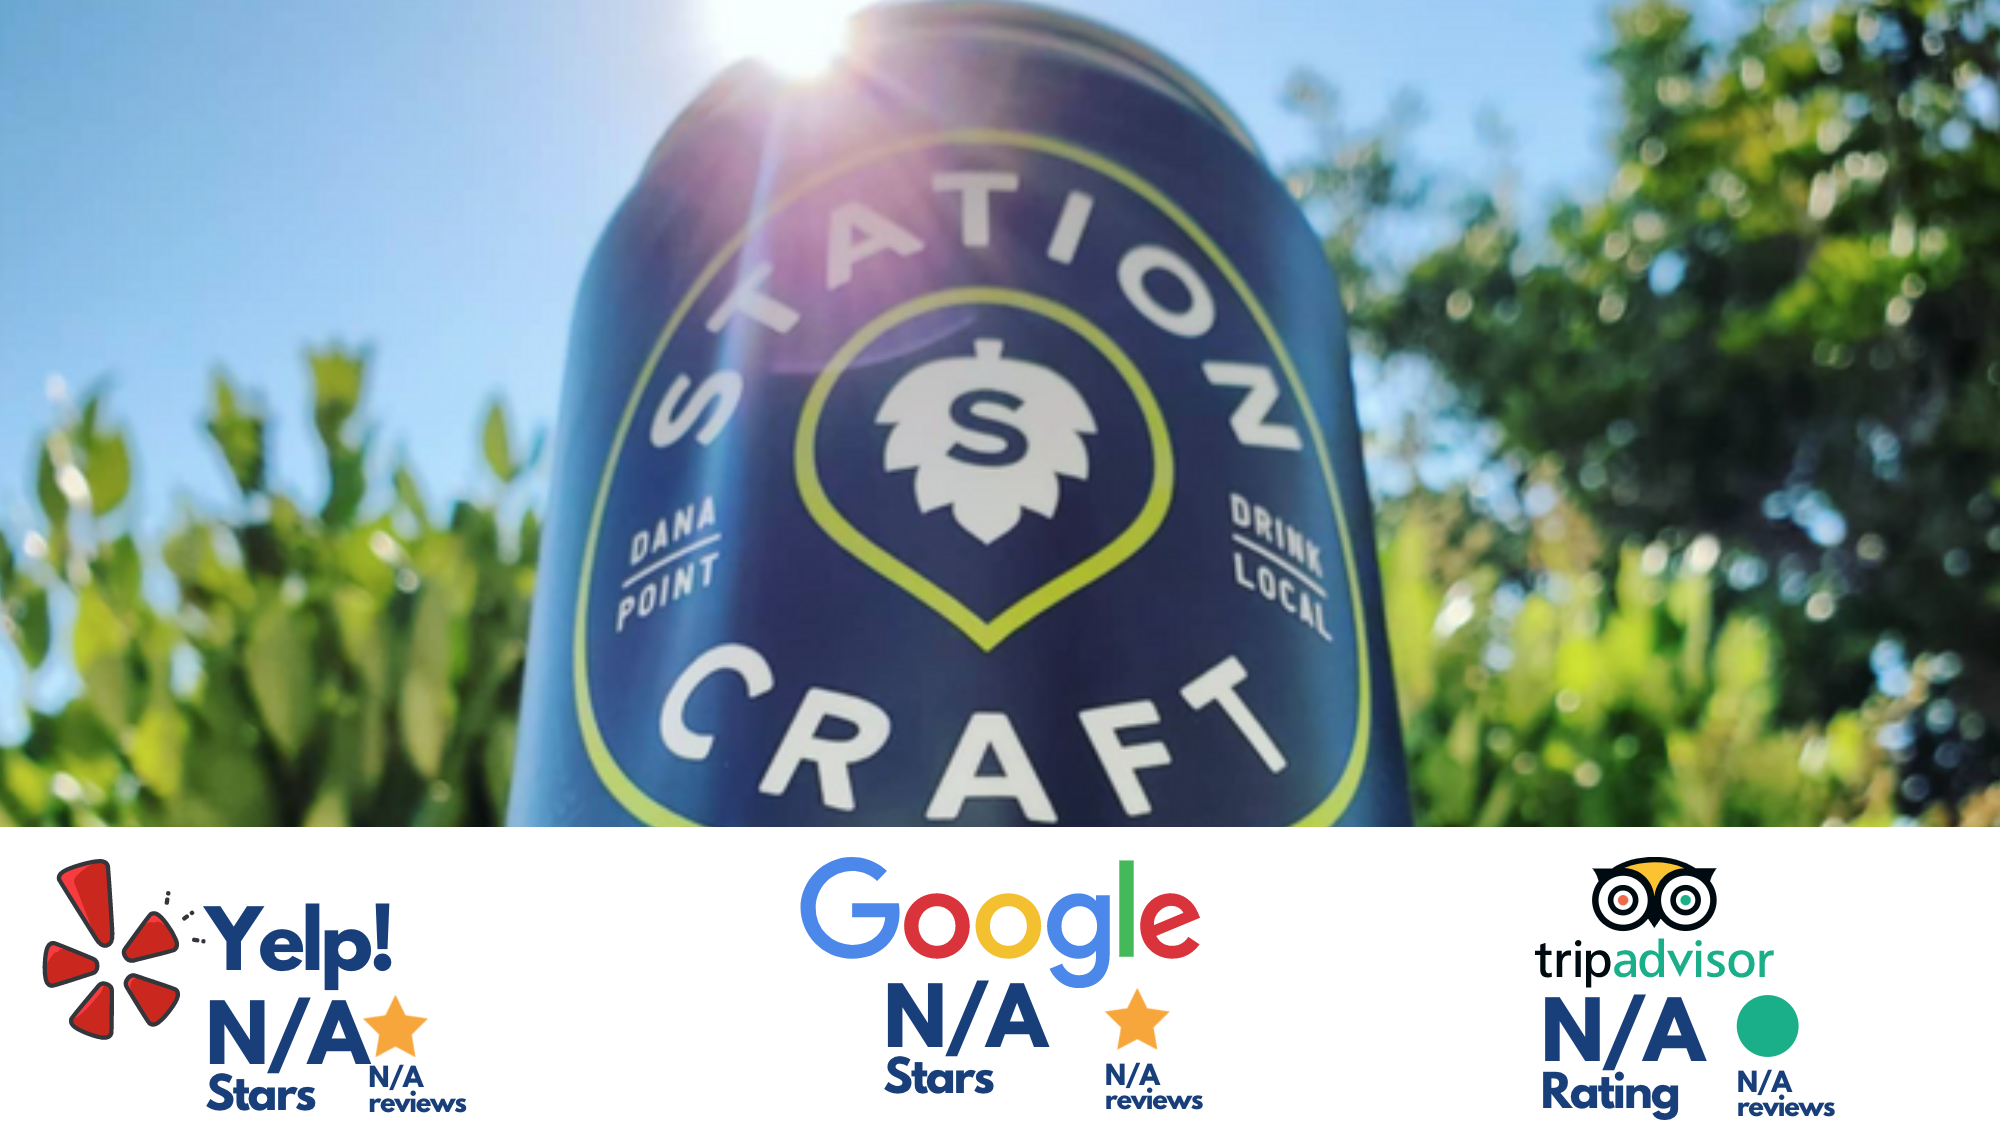 Station Craft, dana point, california, (picture of a beer can)